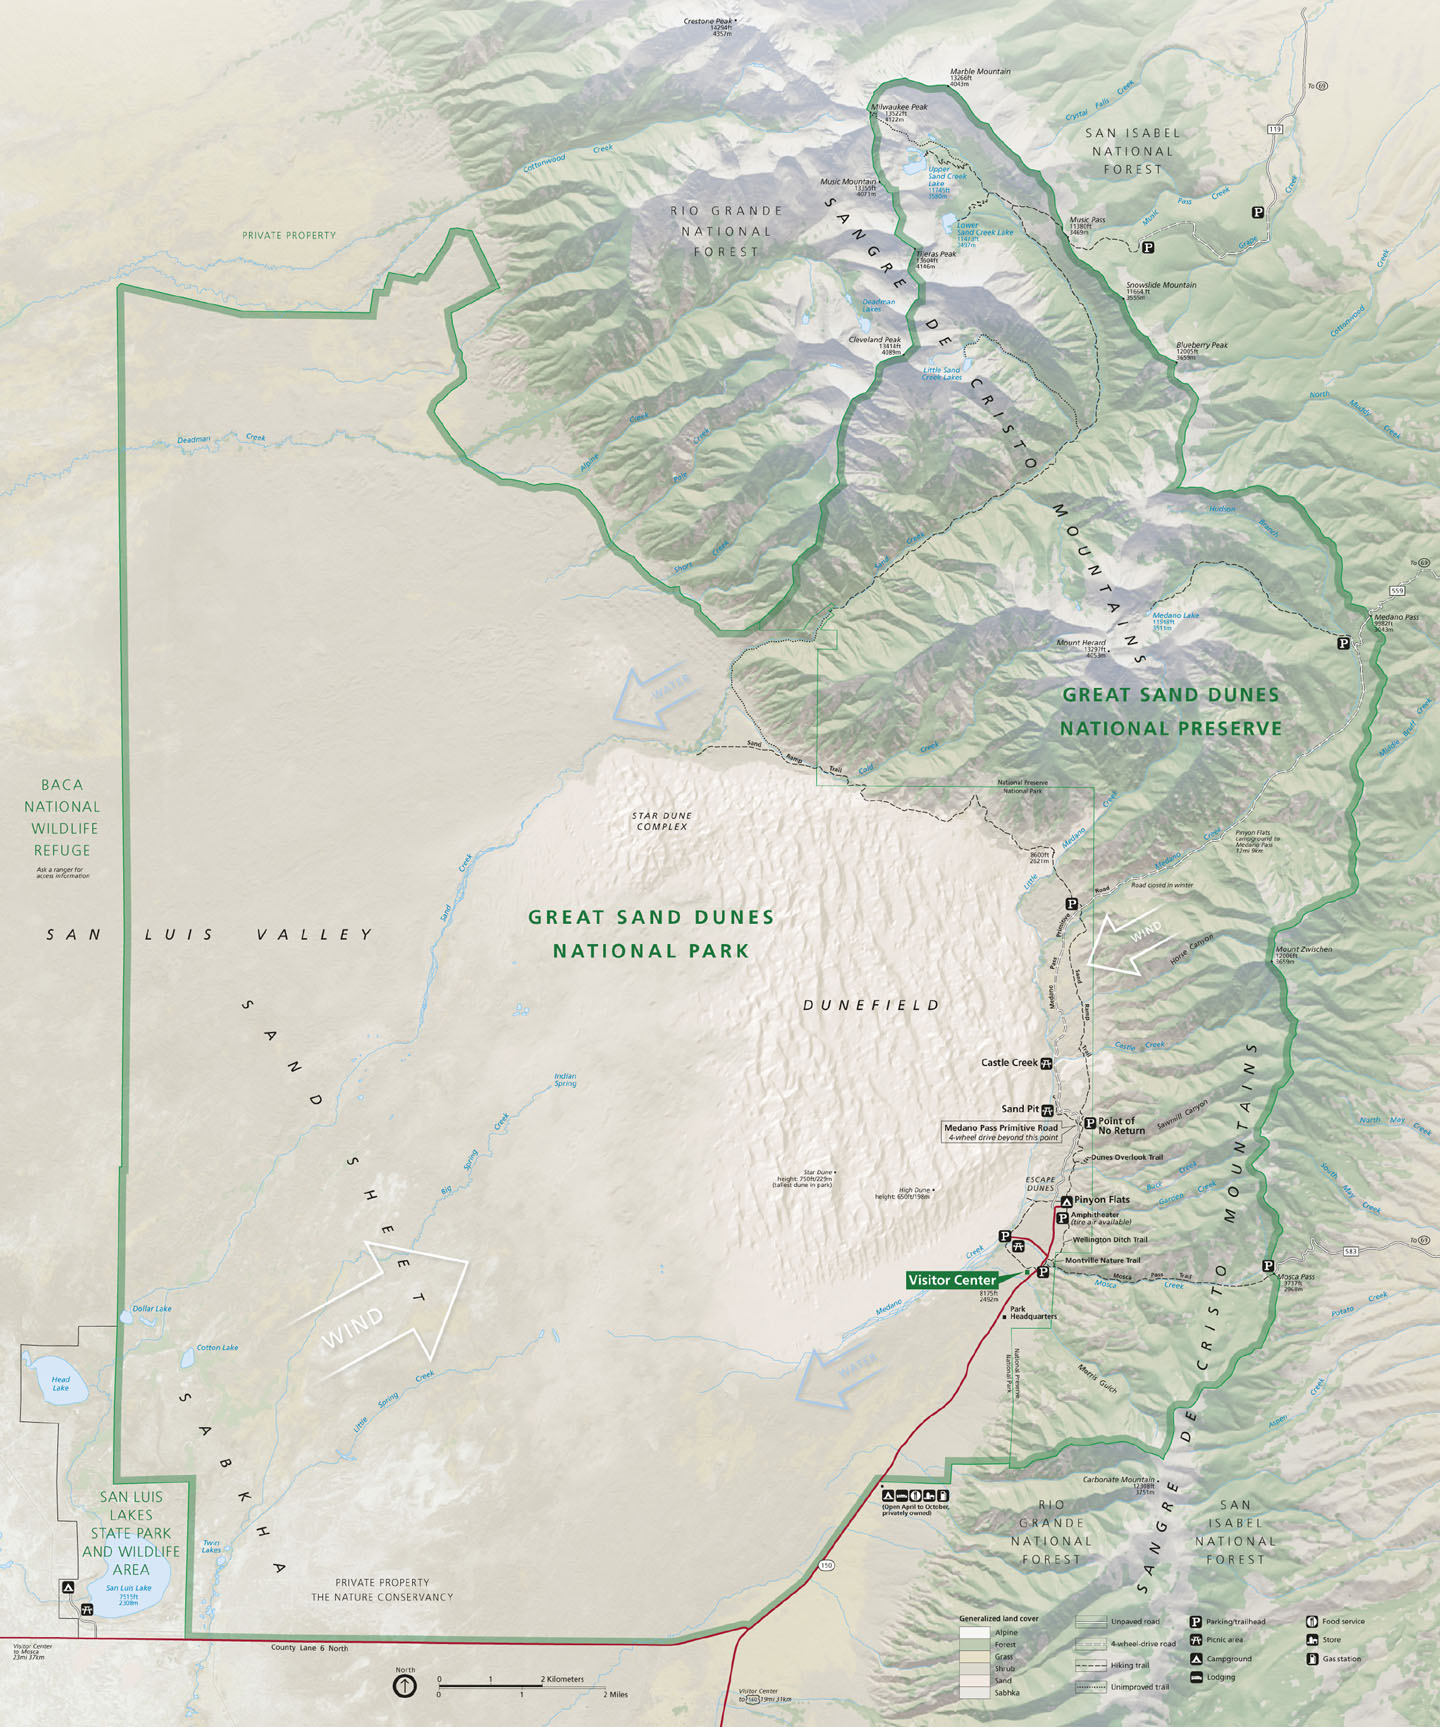 Great Sand Dunes Colorado Around The World In Eighty Years - Map of egypt before the sands